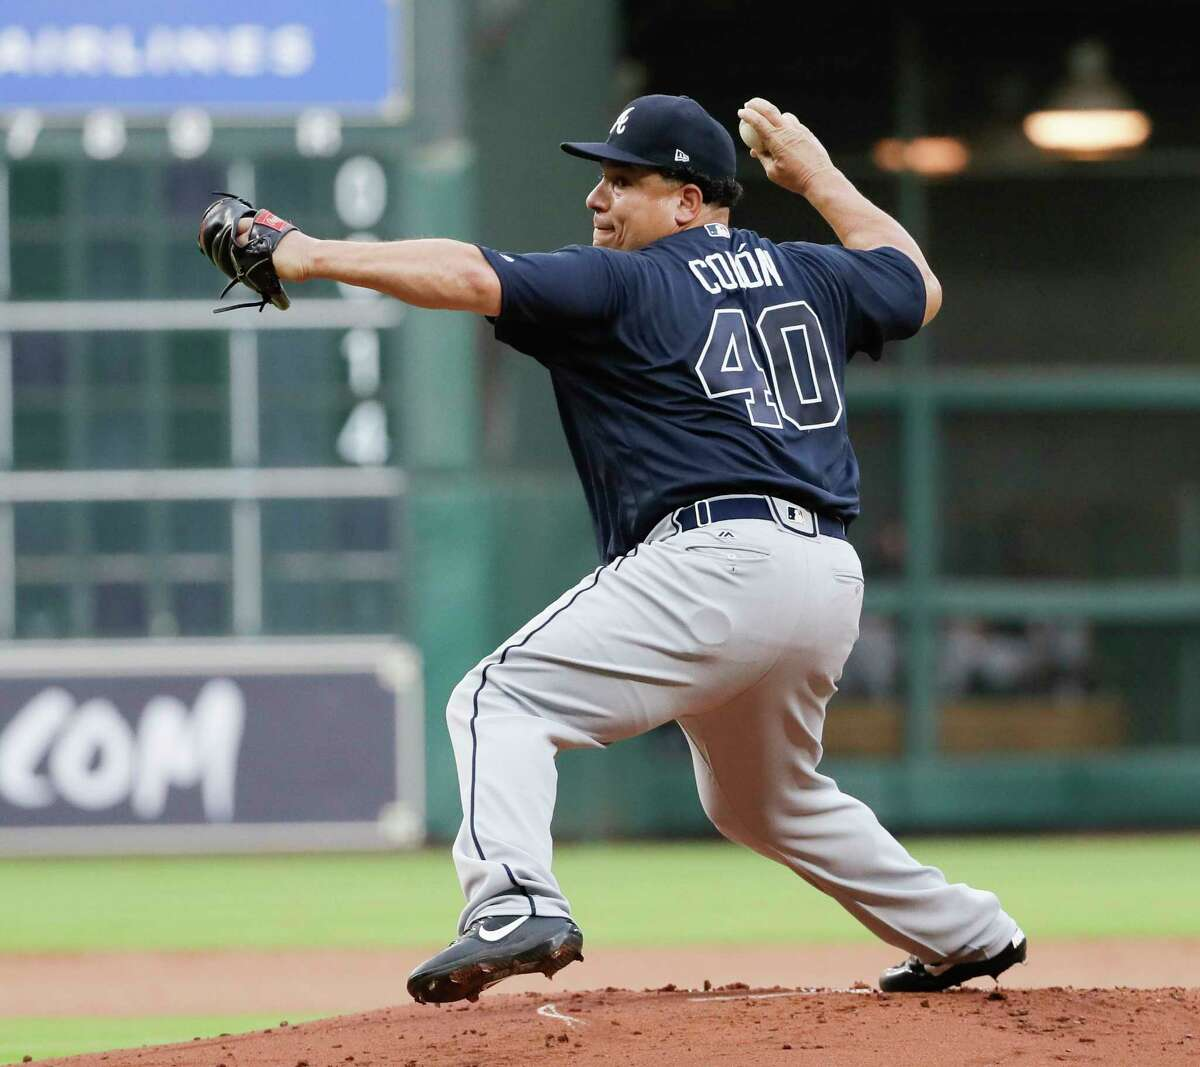 Atlanta Braves starting pitcher Bartolo Colon throws against the Houston Astros during the first inning of a baseball game, Tuesday, May 9, 2017, in Houston. (AP Photo/David J. Phillip)